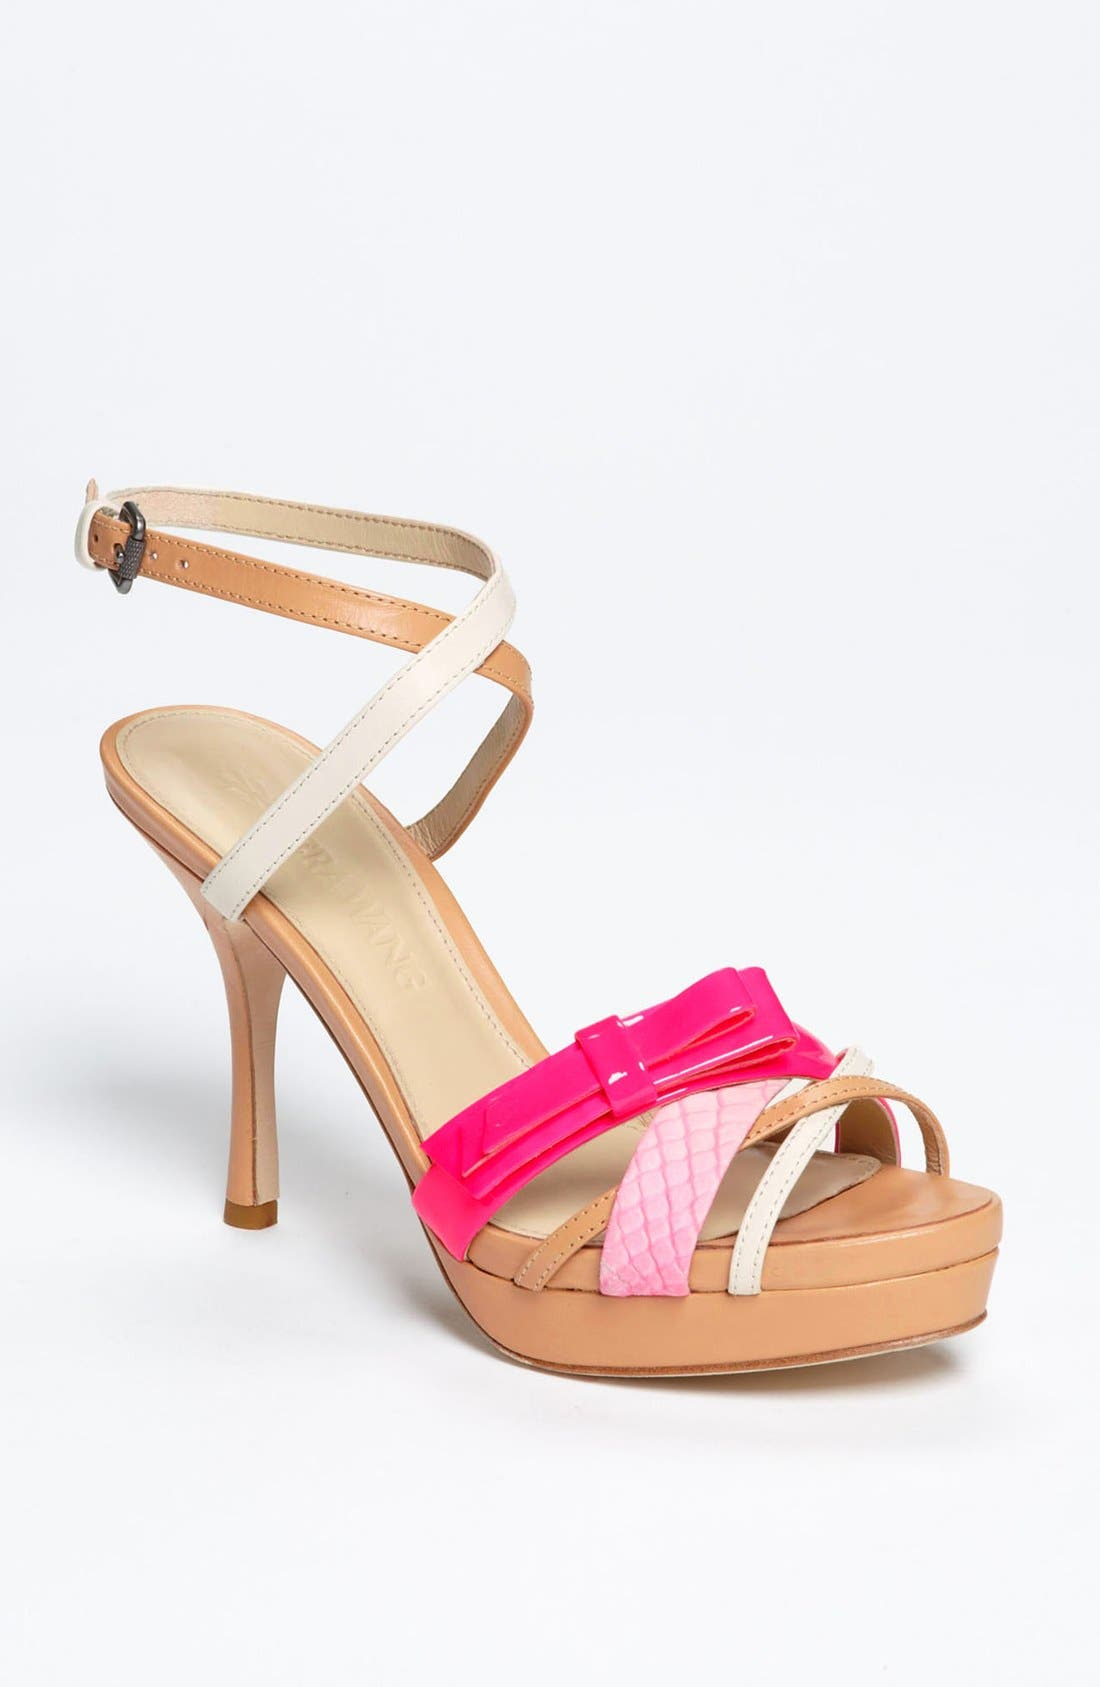 Alternate Image 1 Selected - Vera Wang Footwear 'Qatara' Sandal